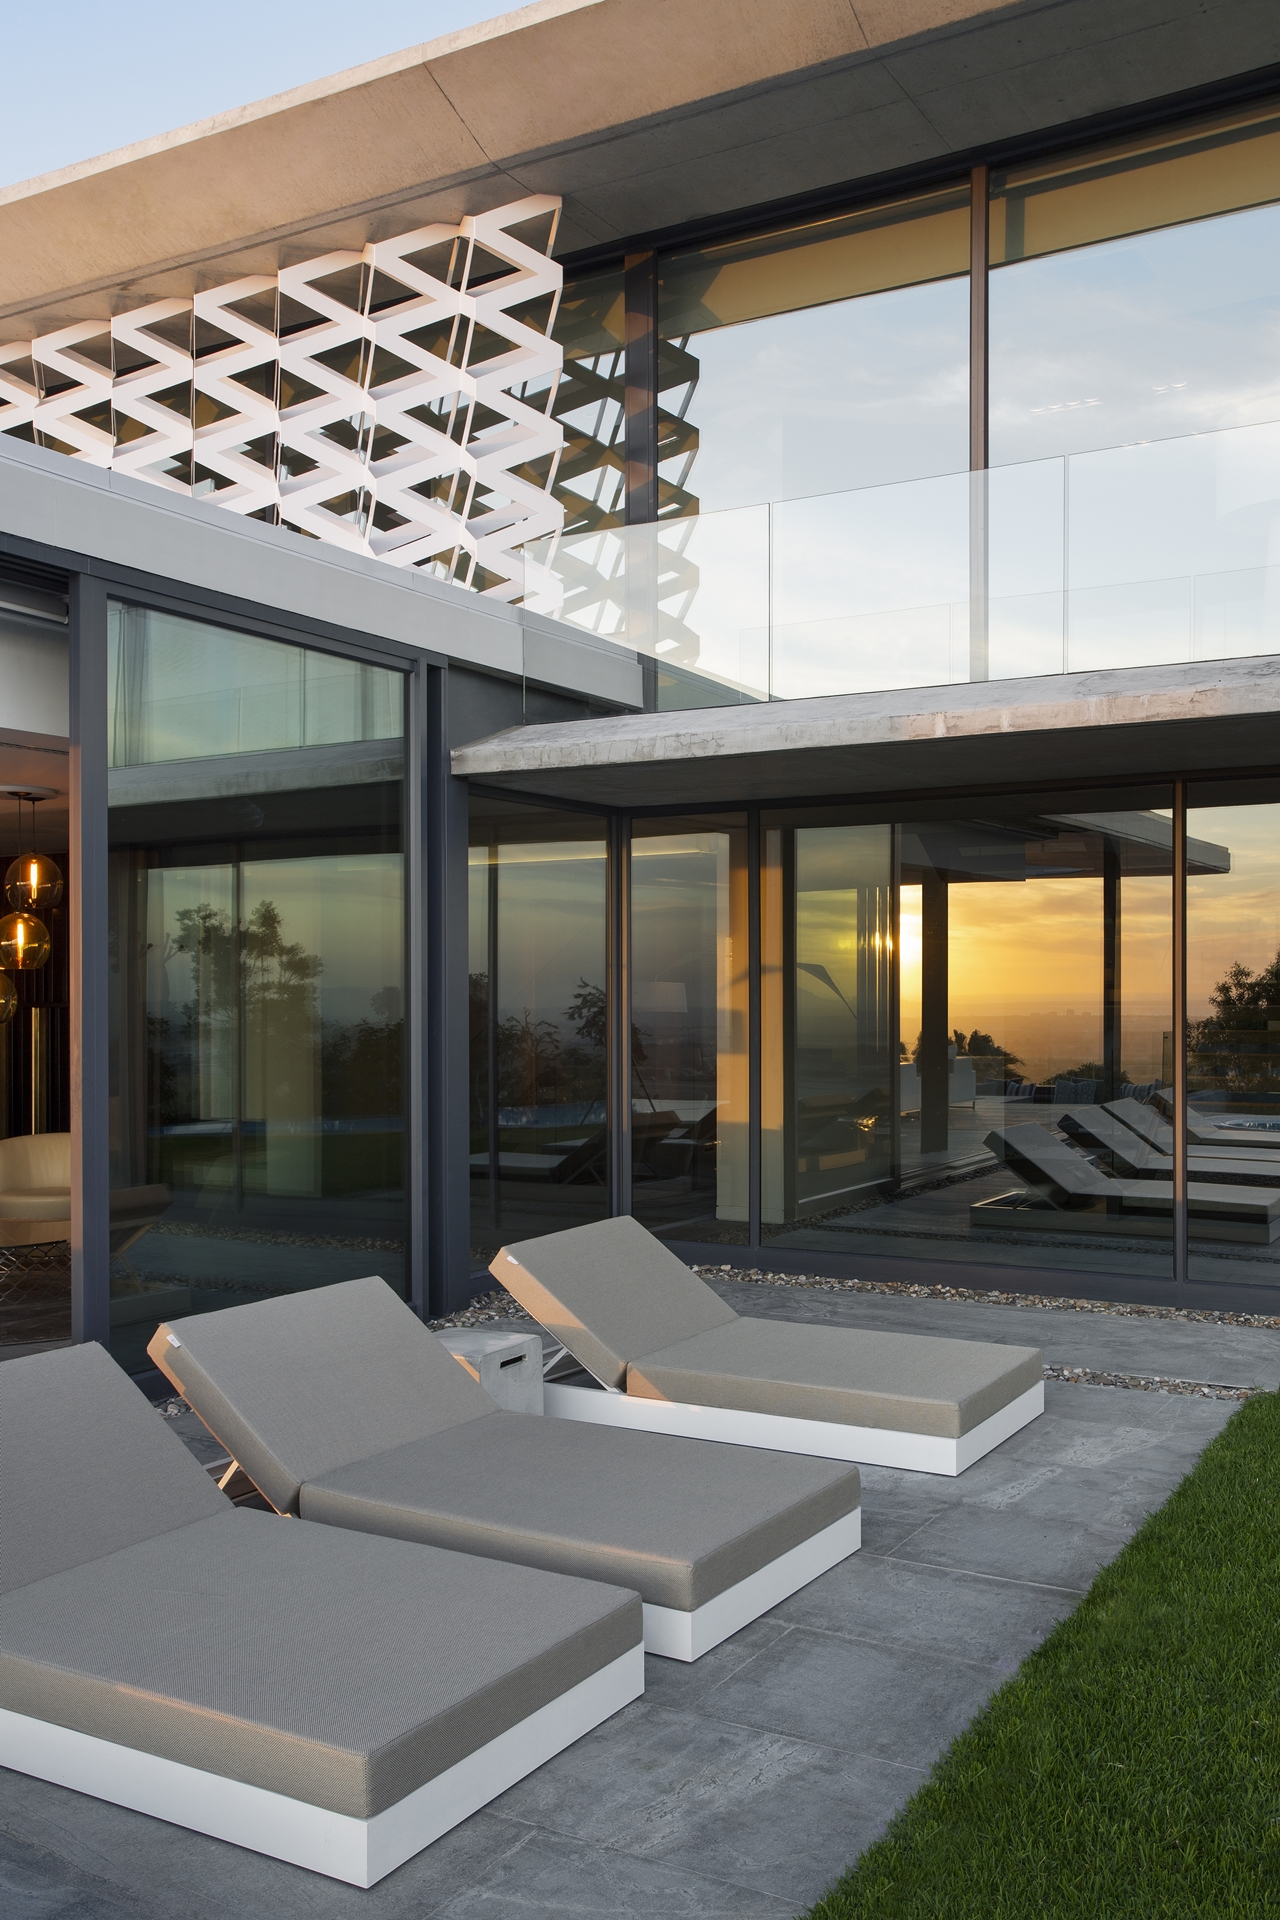 Design Of House Windows Modern Doors And: Concrete And Glass House: Modern City Villa By ARRCC